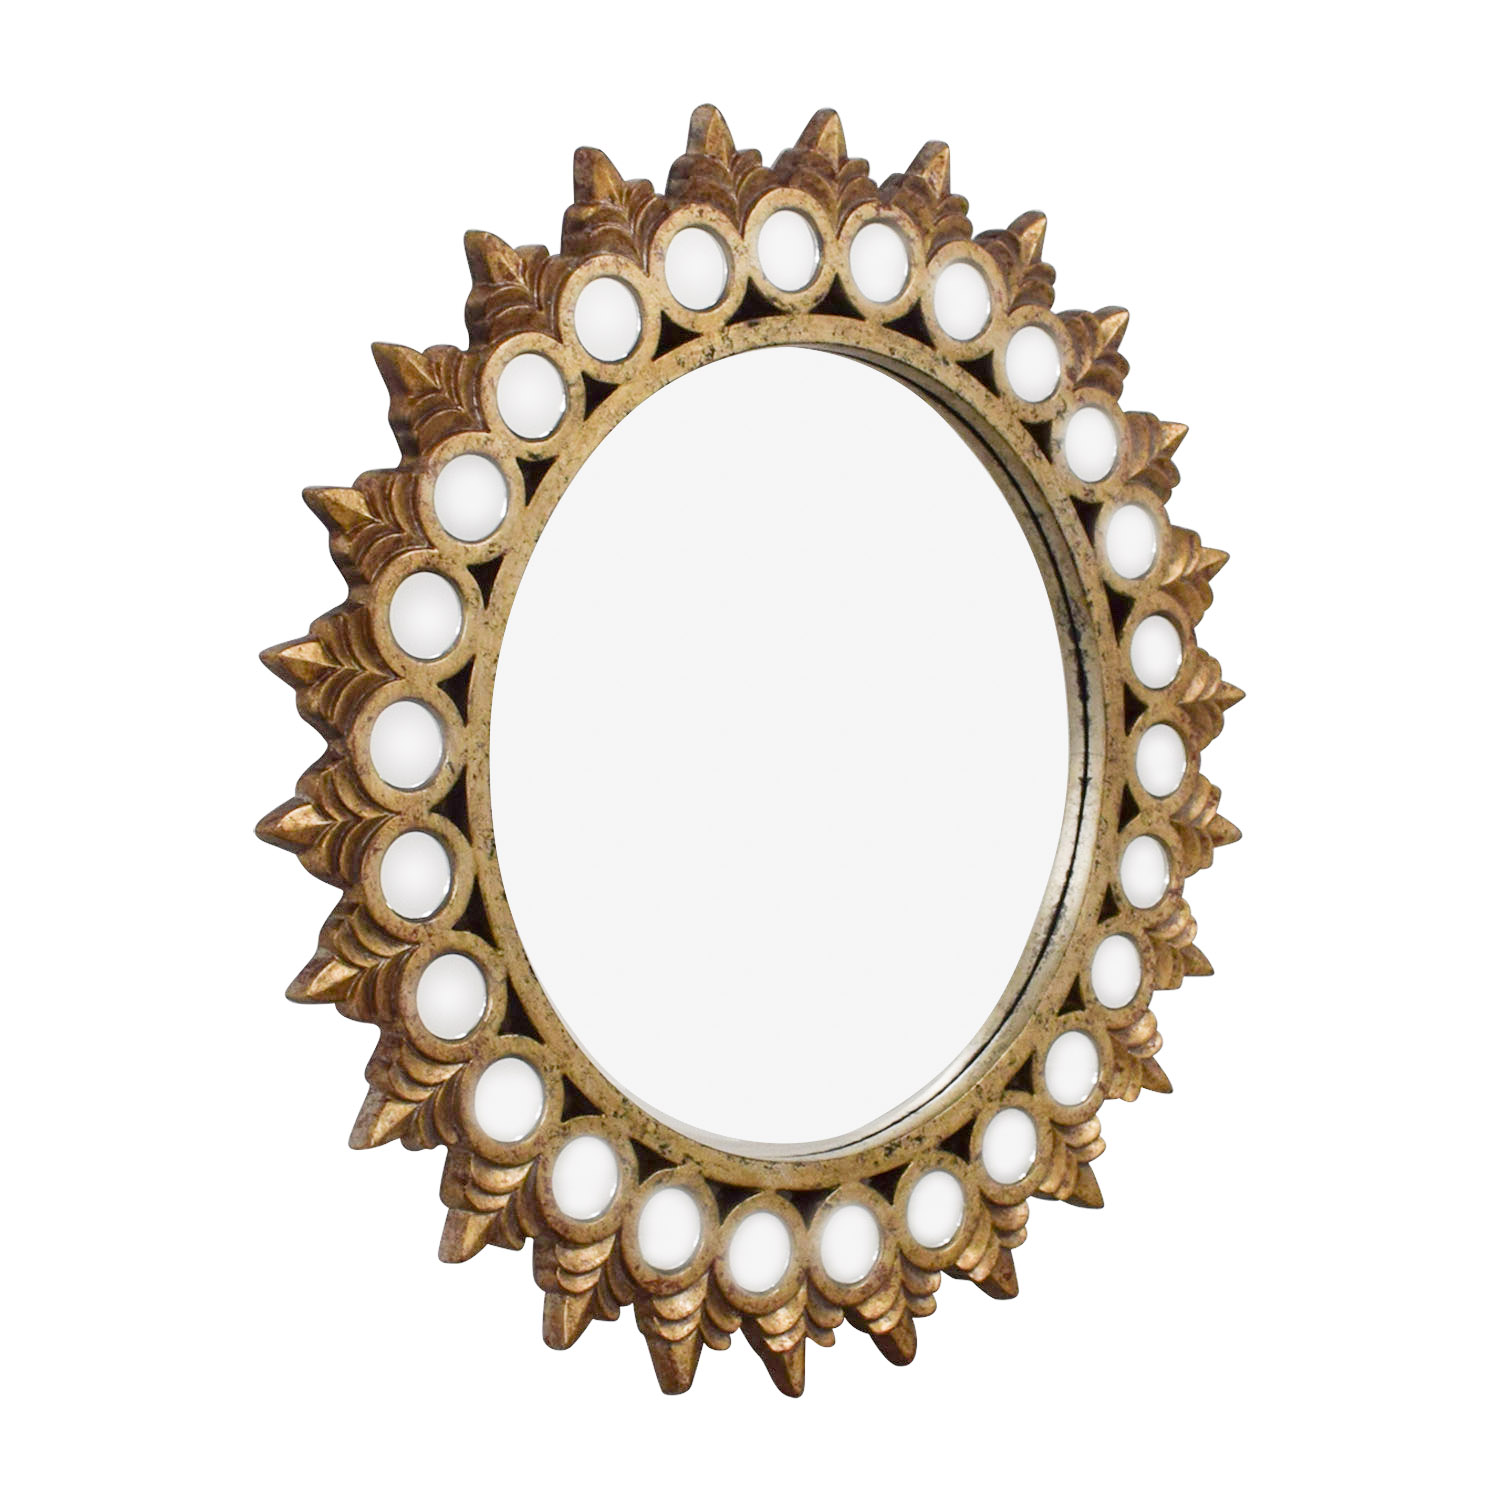 Raymour & Flanigan Raymour & Flanigan Distressed Gold Mirrored Frame Round Mirror Decor